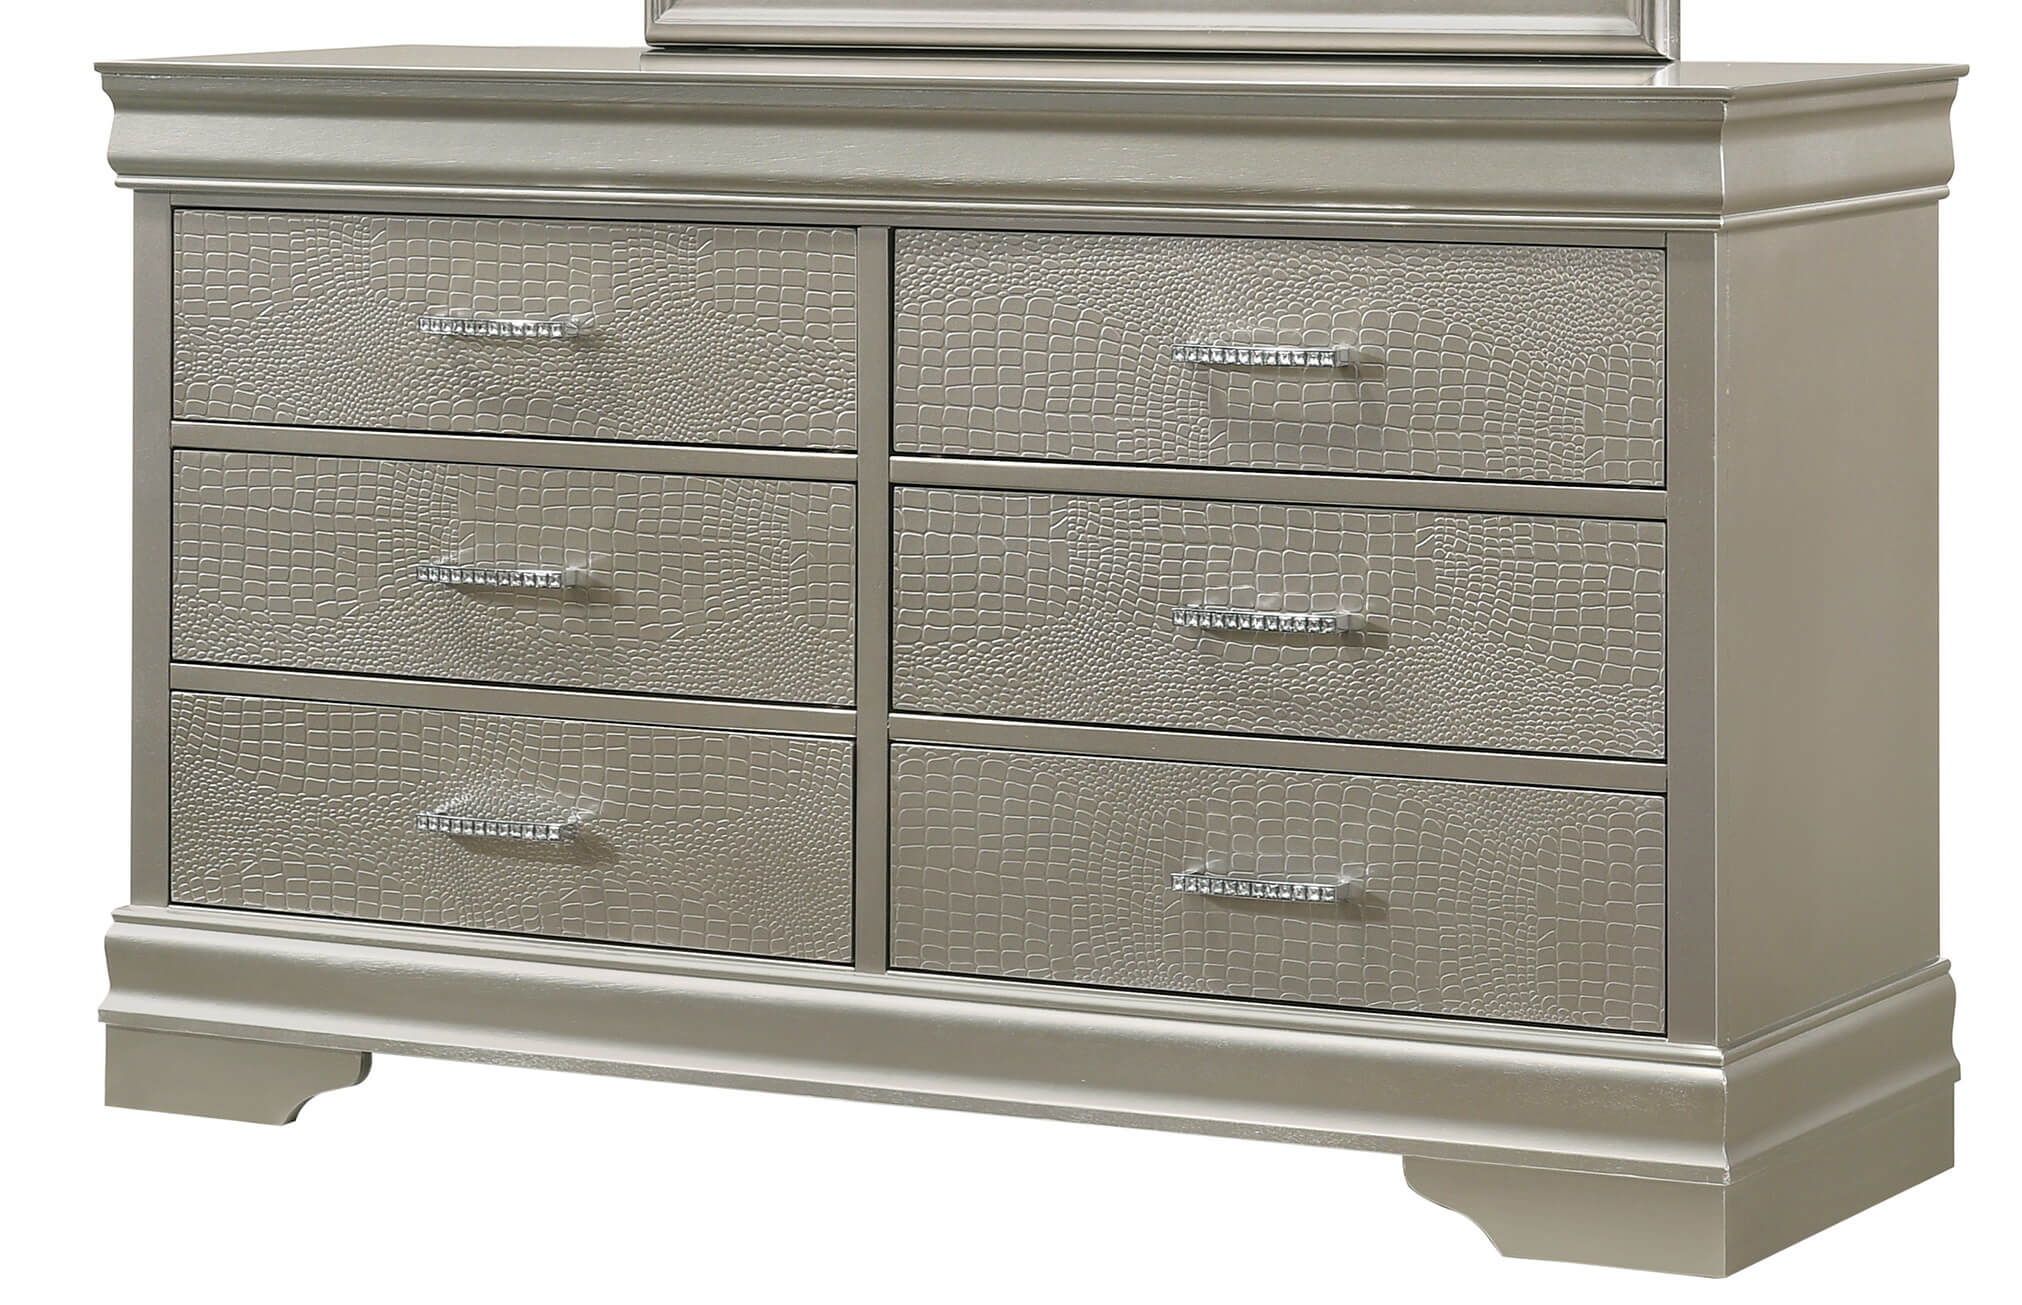 amalia silver louis philip dresser by crown mark bedroom furniture b6910 1 amalia silver 6 drawer louis philip dresser by crown mark